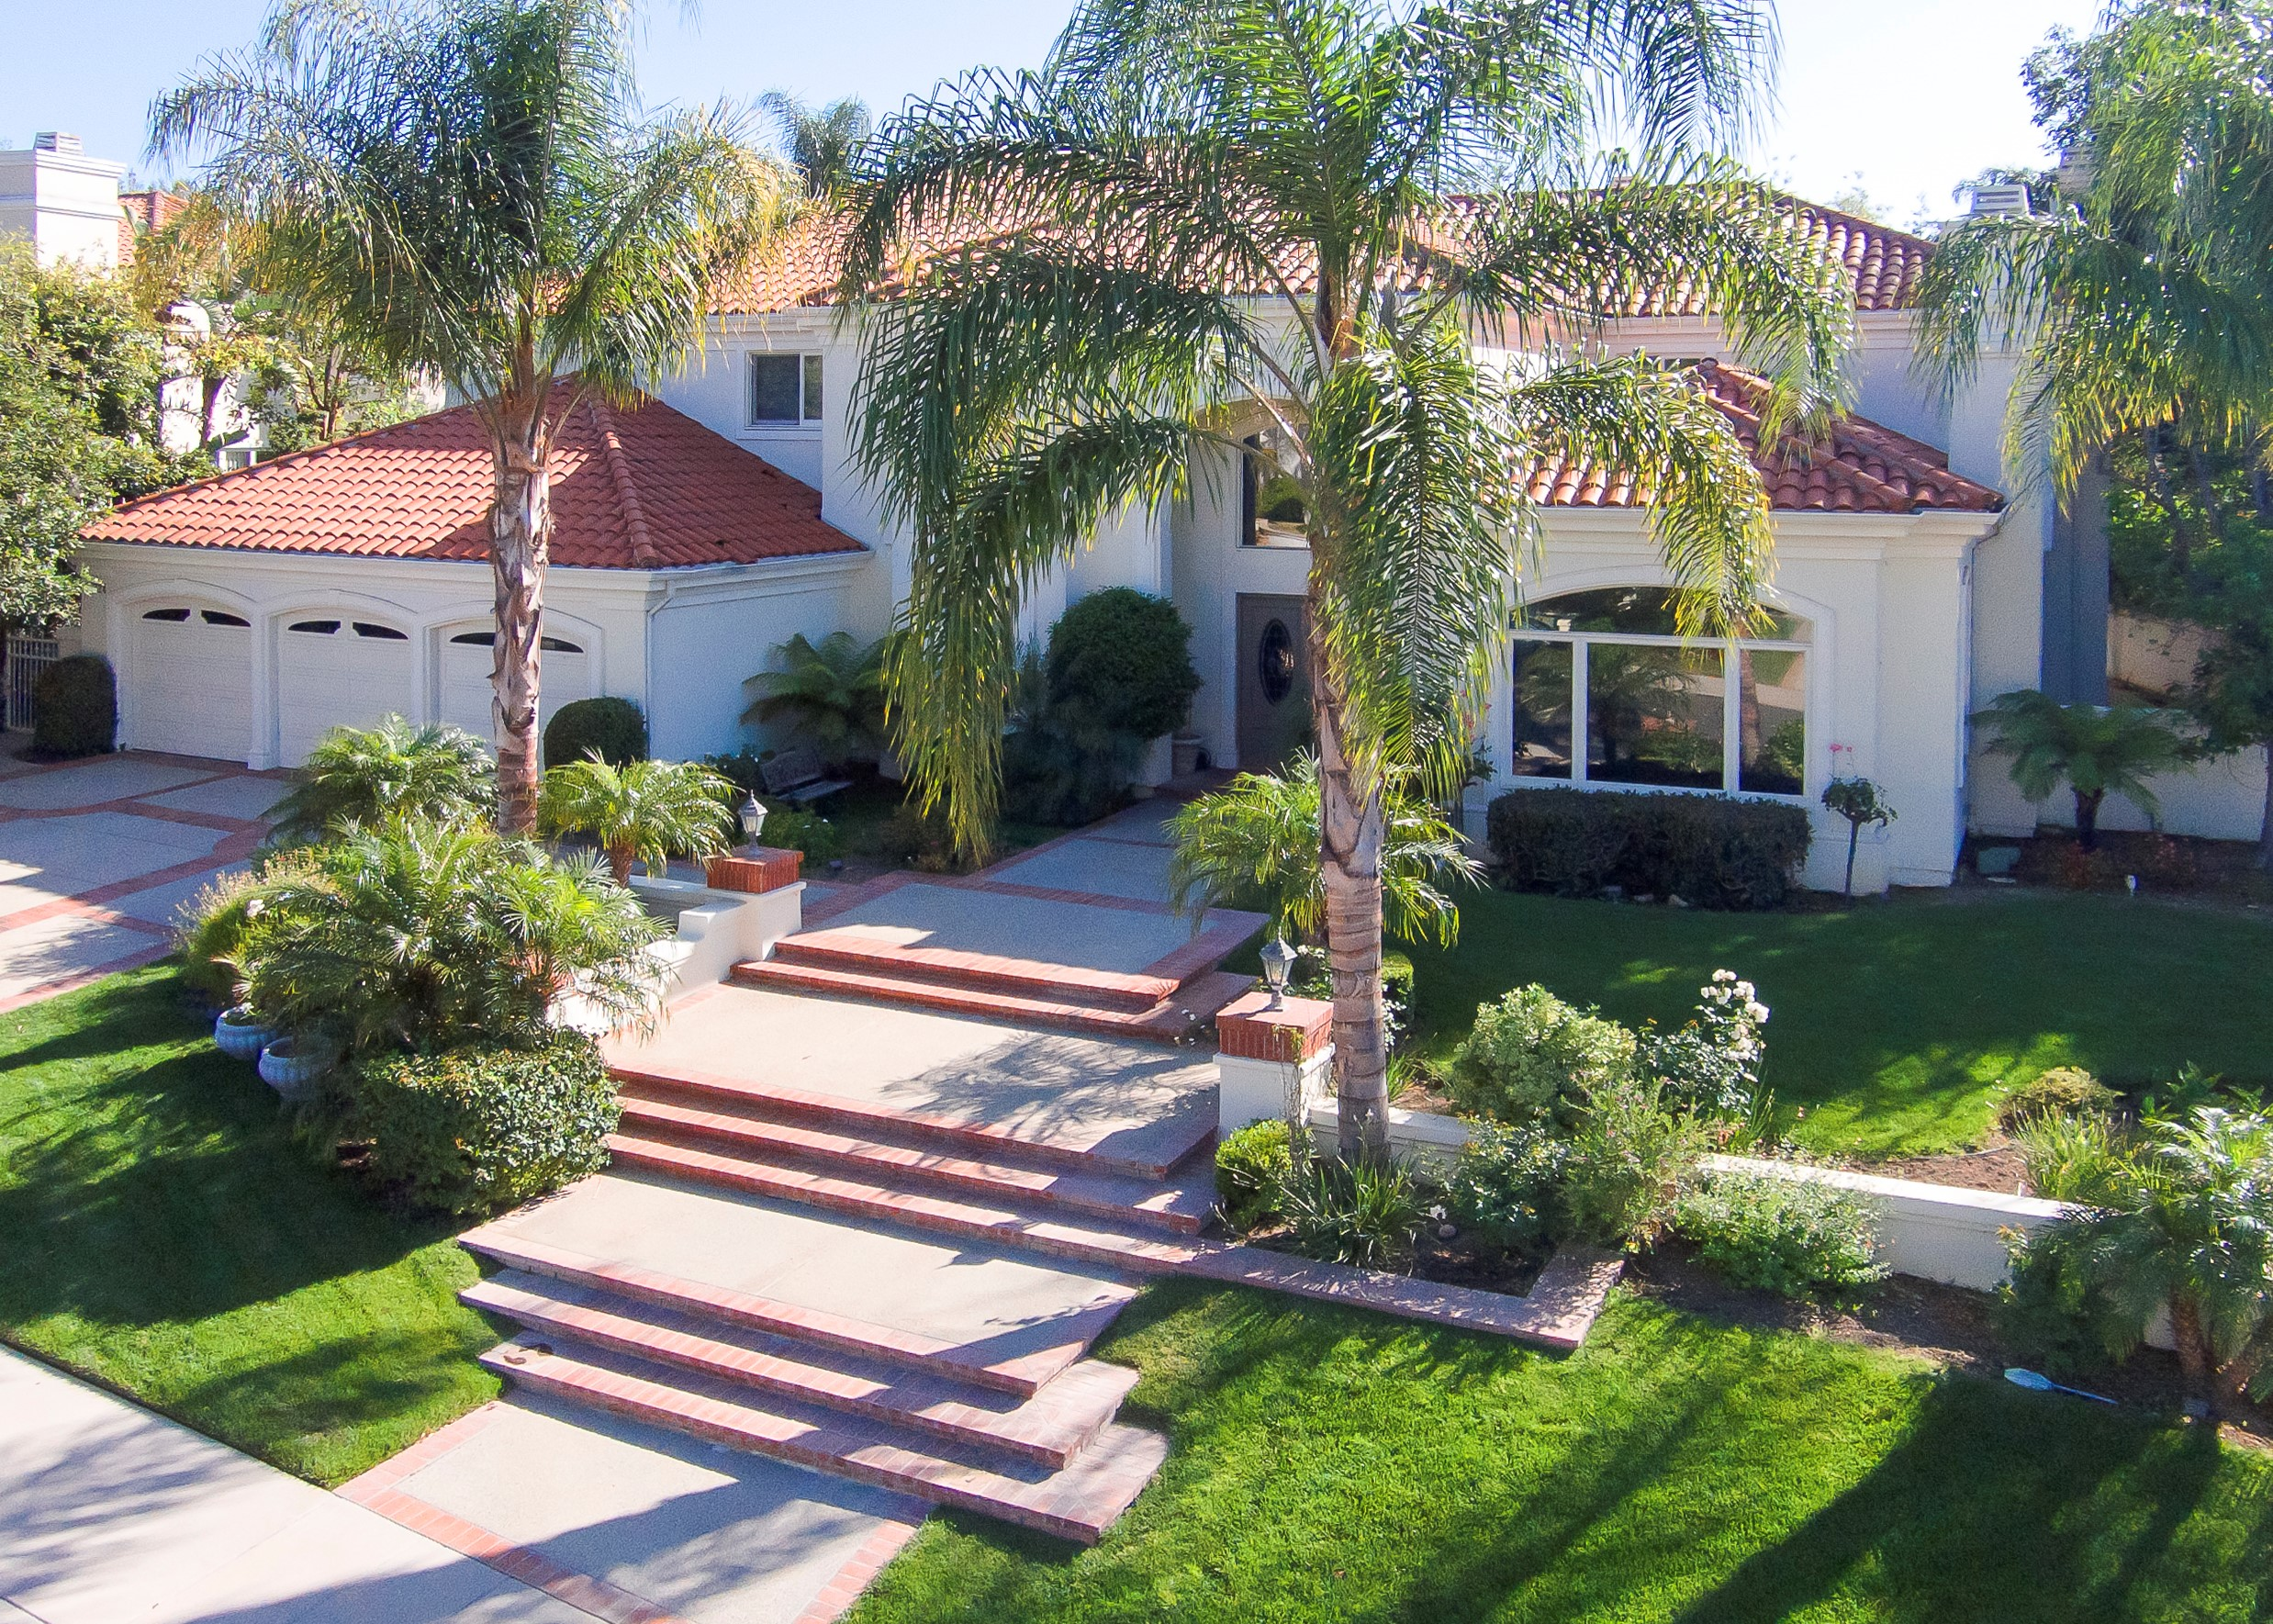 Single Family Home for Sale at 52724 Simpson Place 25724 Simpson Place Calabasas, California 91302 United States